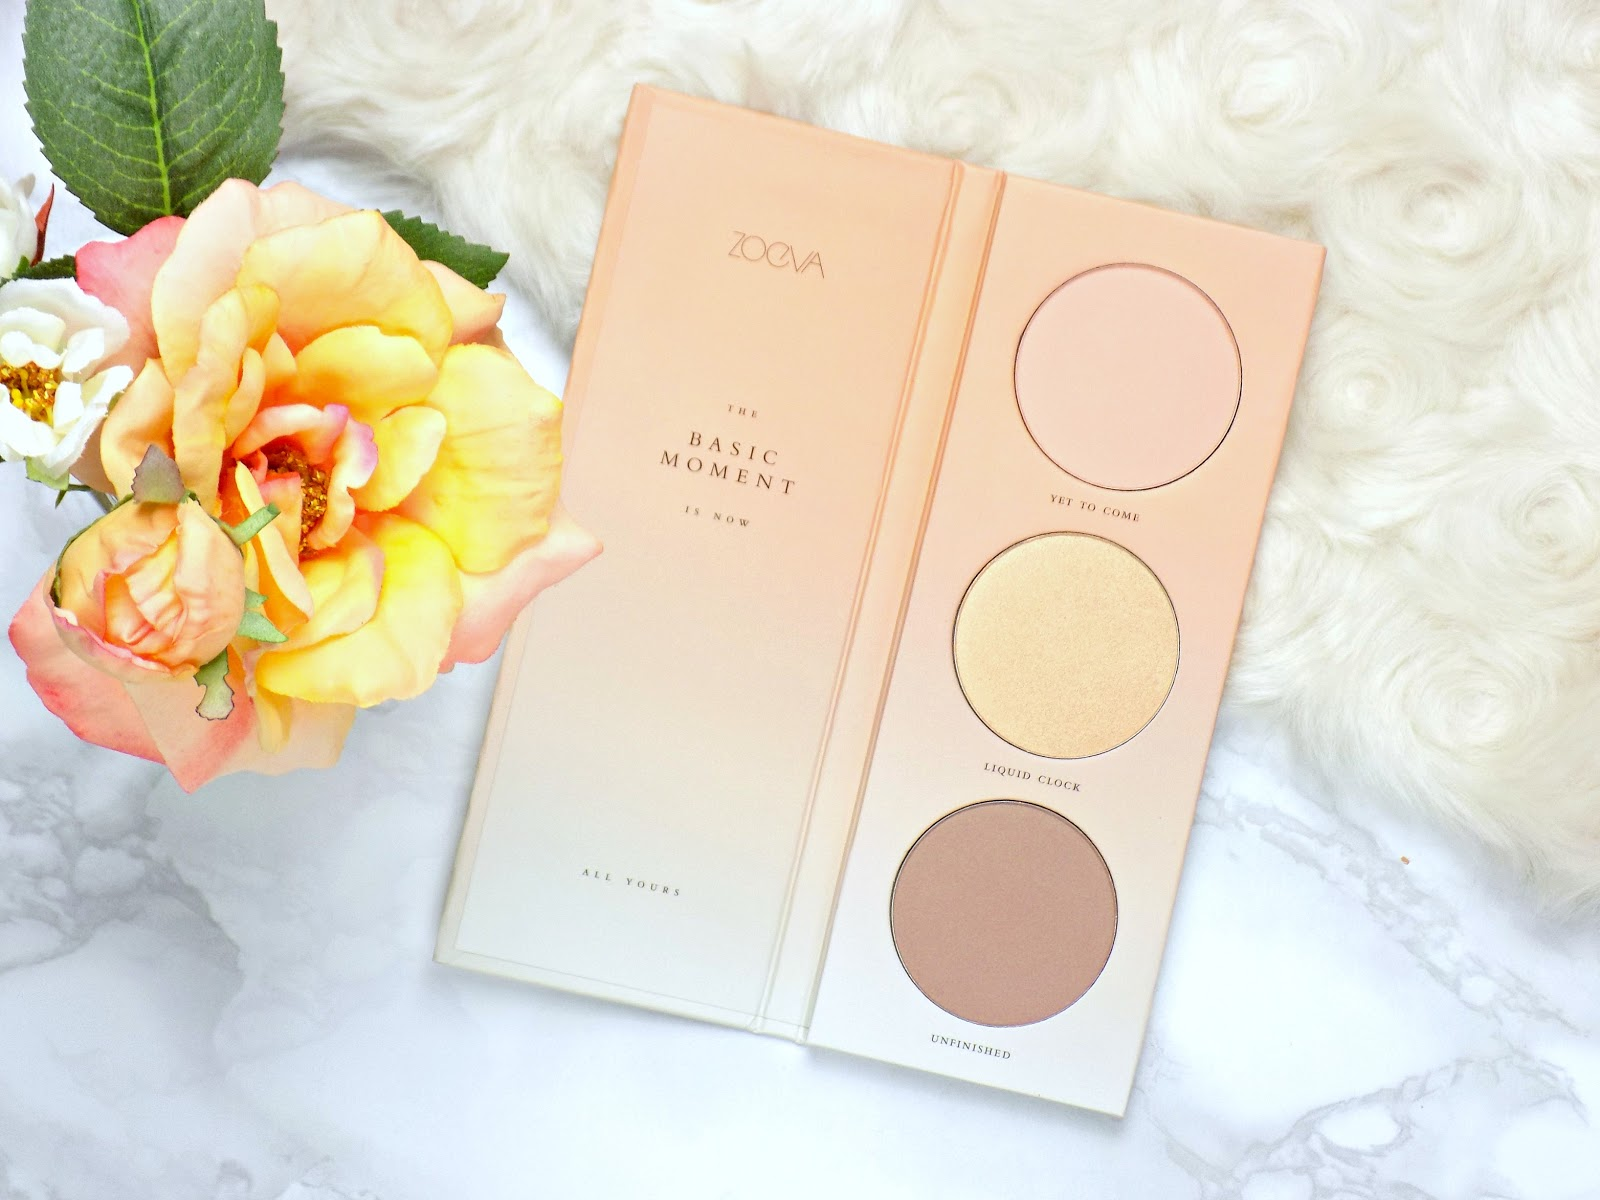 Zoeva Basic Moment Blush Palette